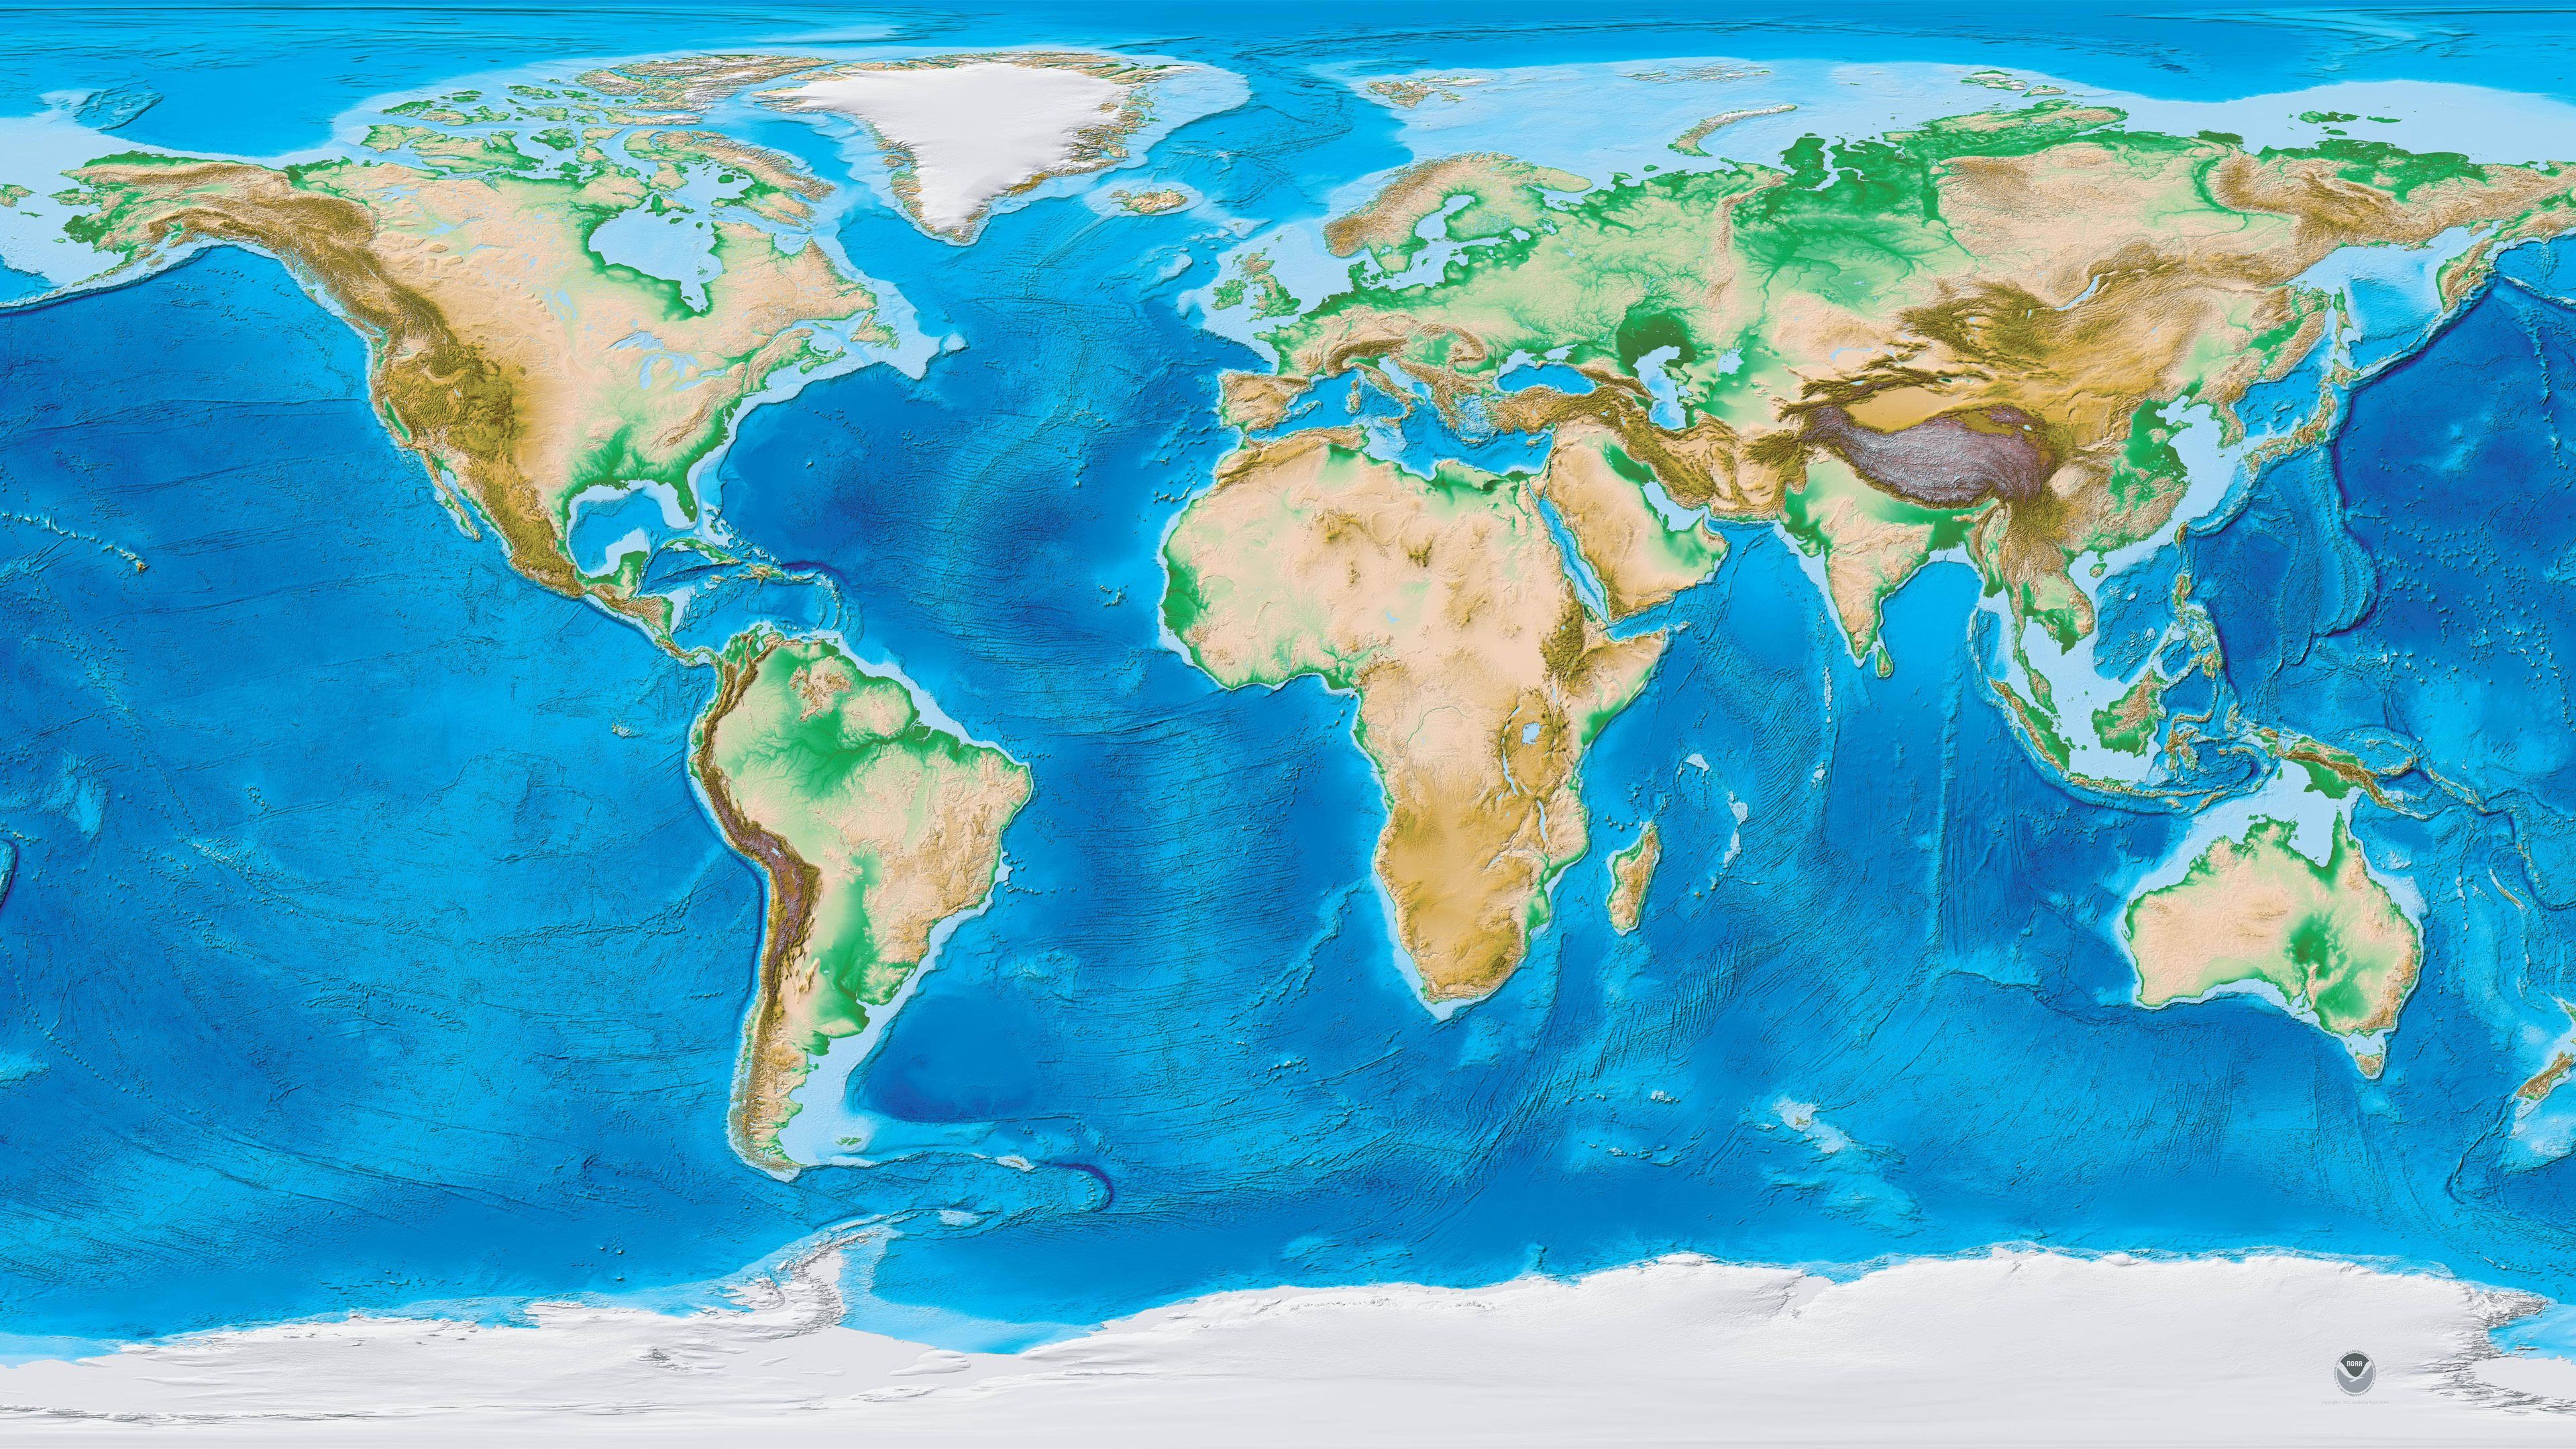 Pin by geografia universaltb on cartografa pinterest 6000 x 3273 px world map picture for mac computers by carlton thomas gumiabroncs Image collections